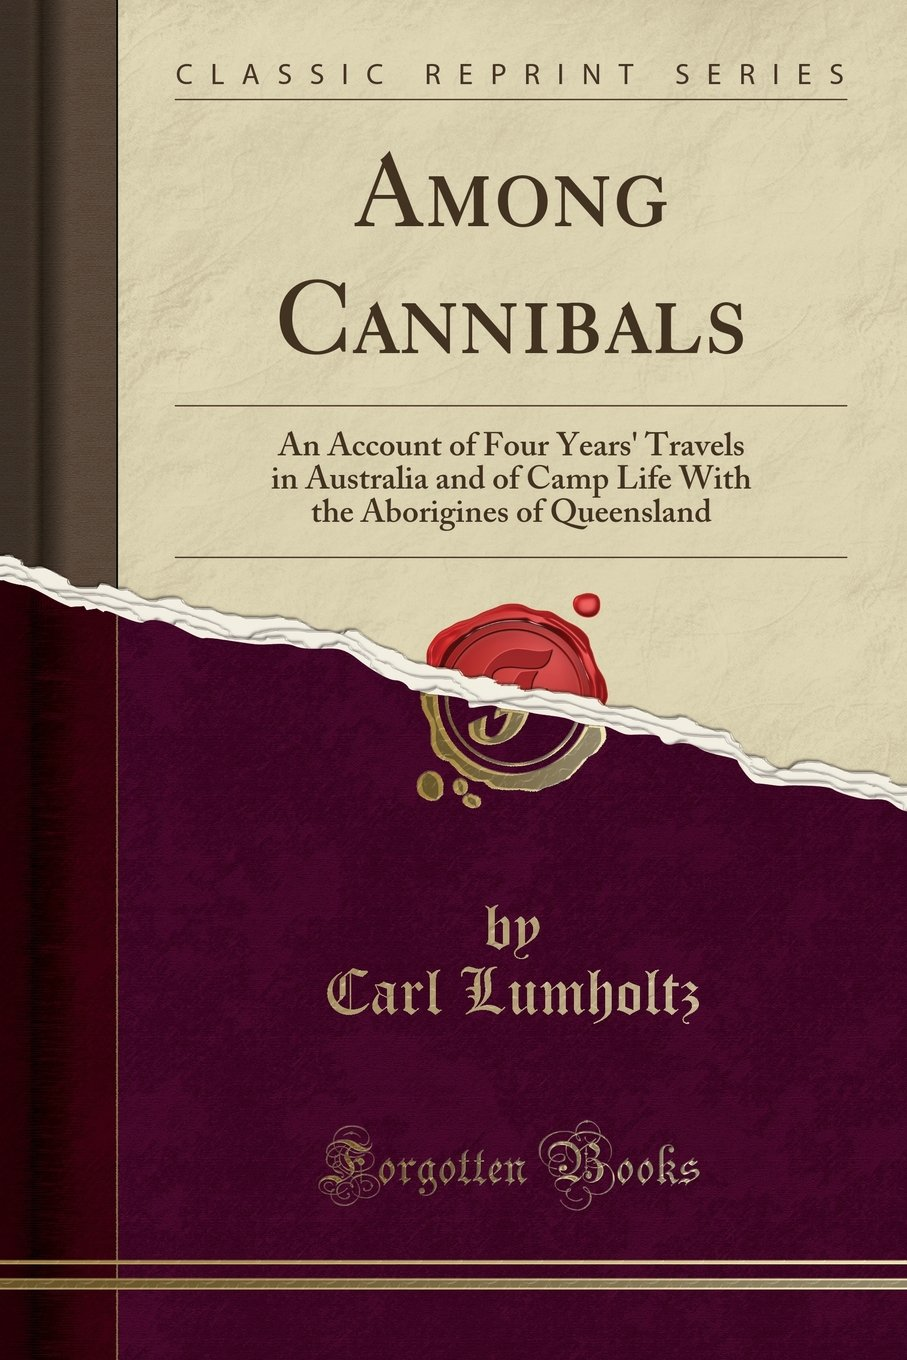 Among Cannibals: An Account of Four Years' Travels in Australia and of Camp Life With the Aborigines of Queensland (Classic Reprint) PDF